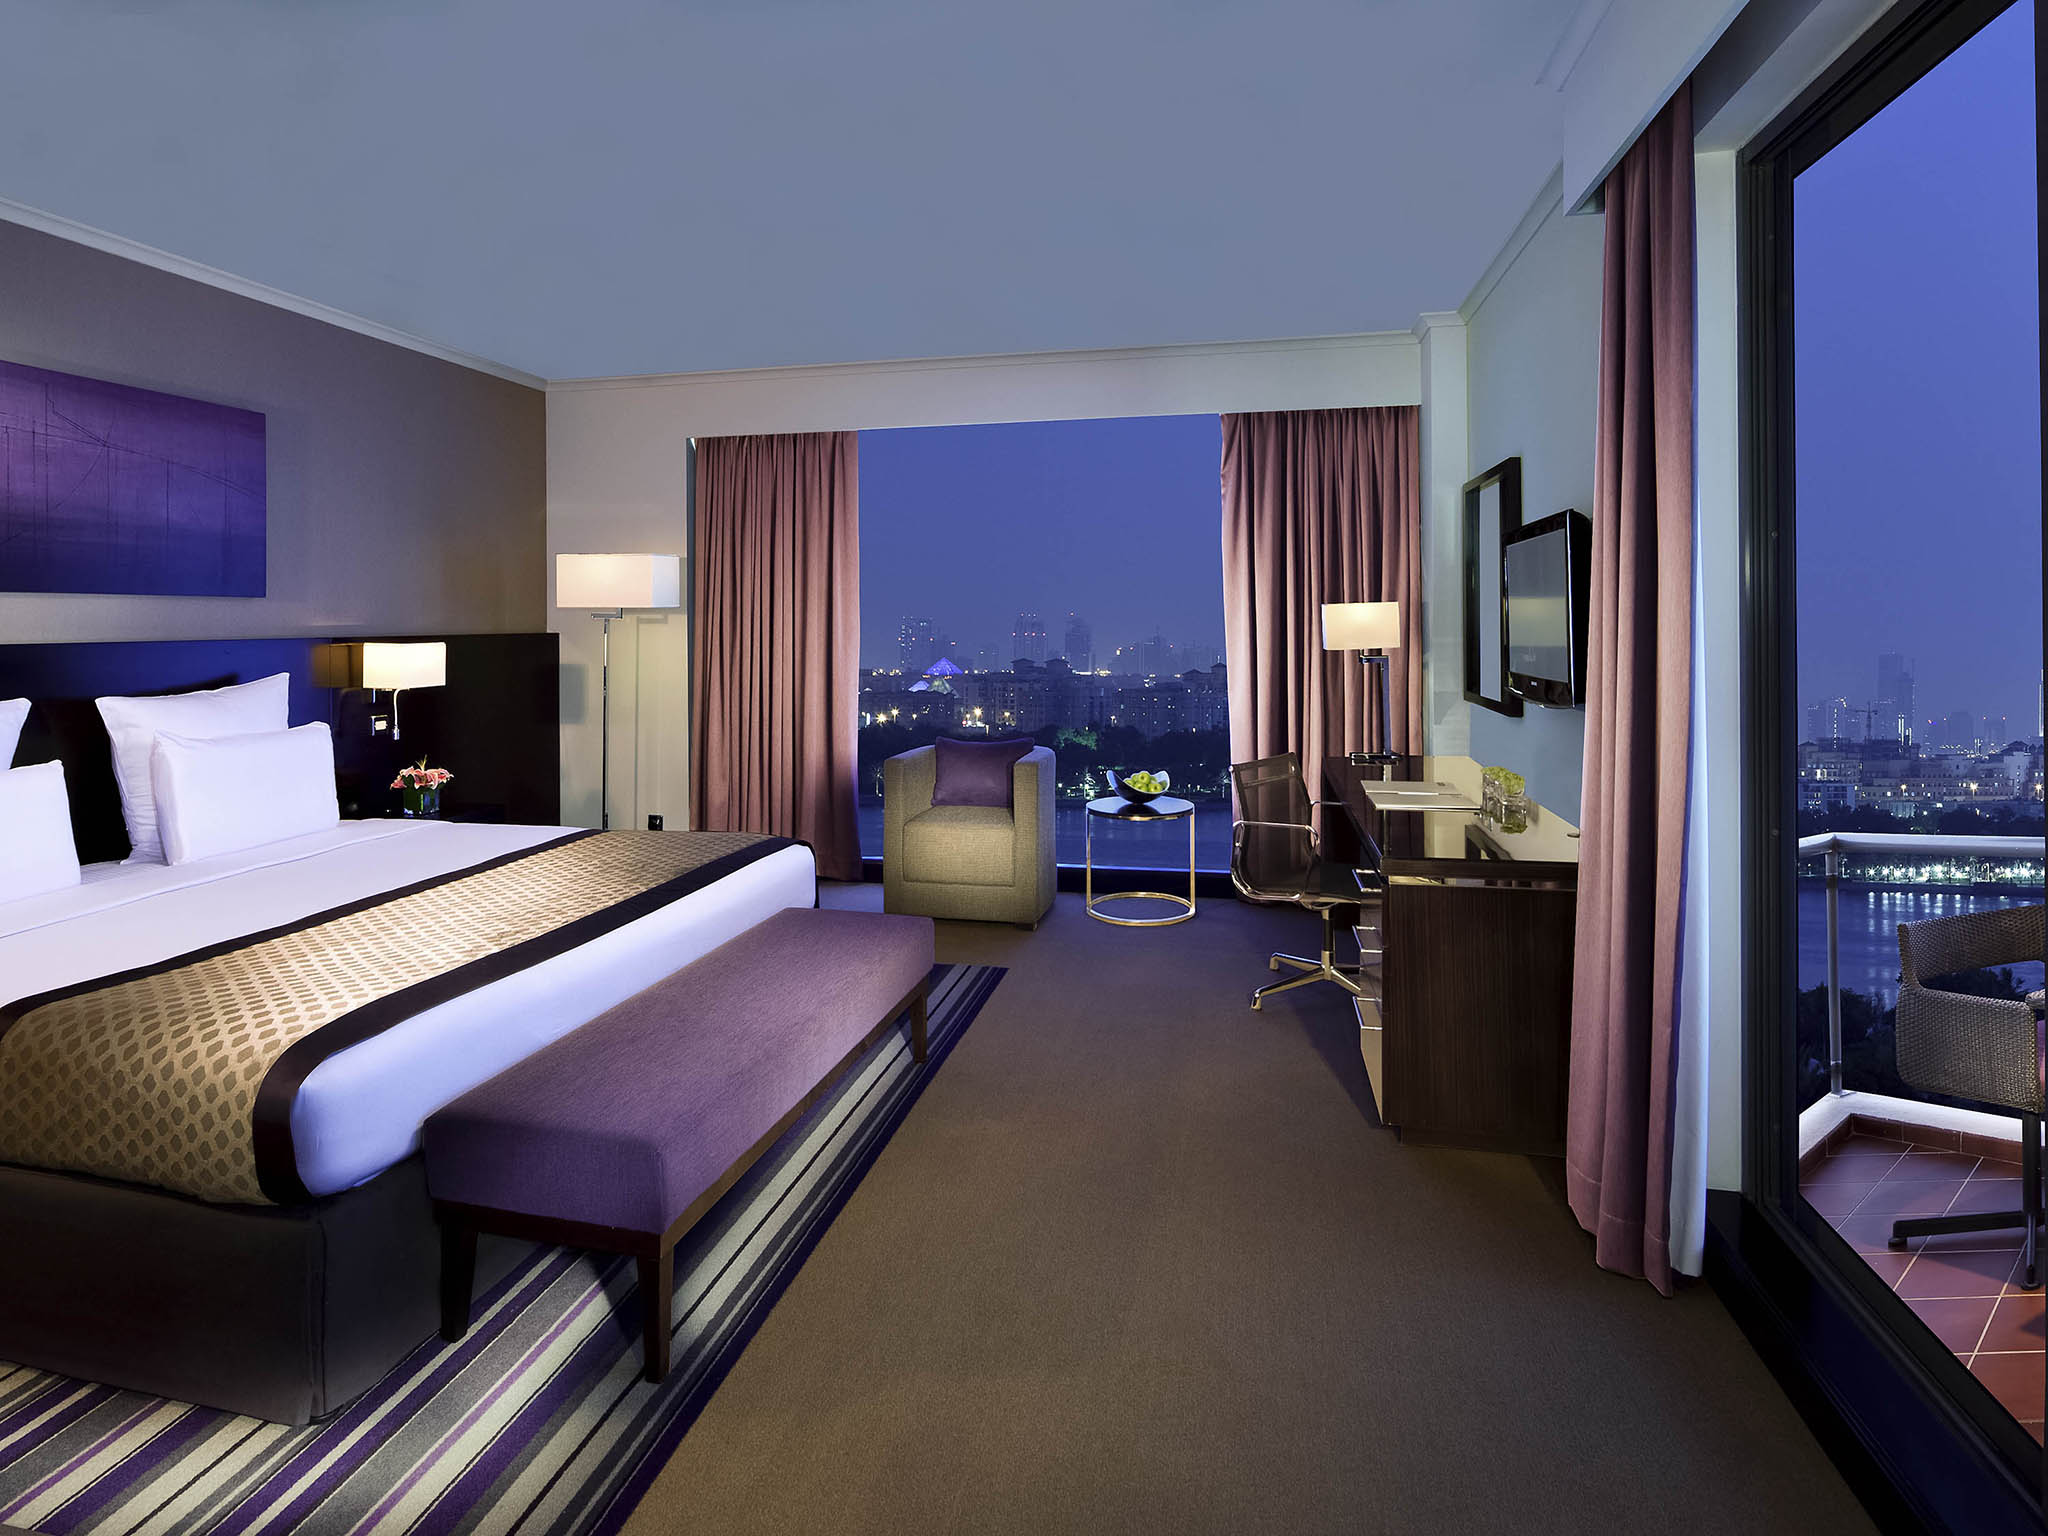 Hotels In Dubai With In Room Mabage